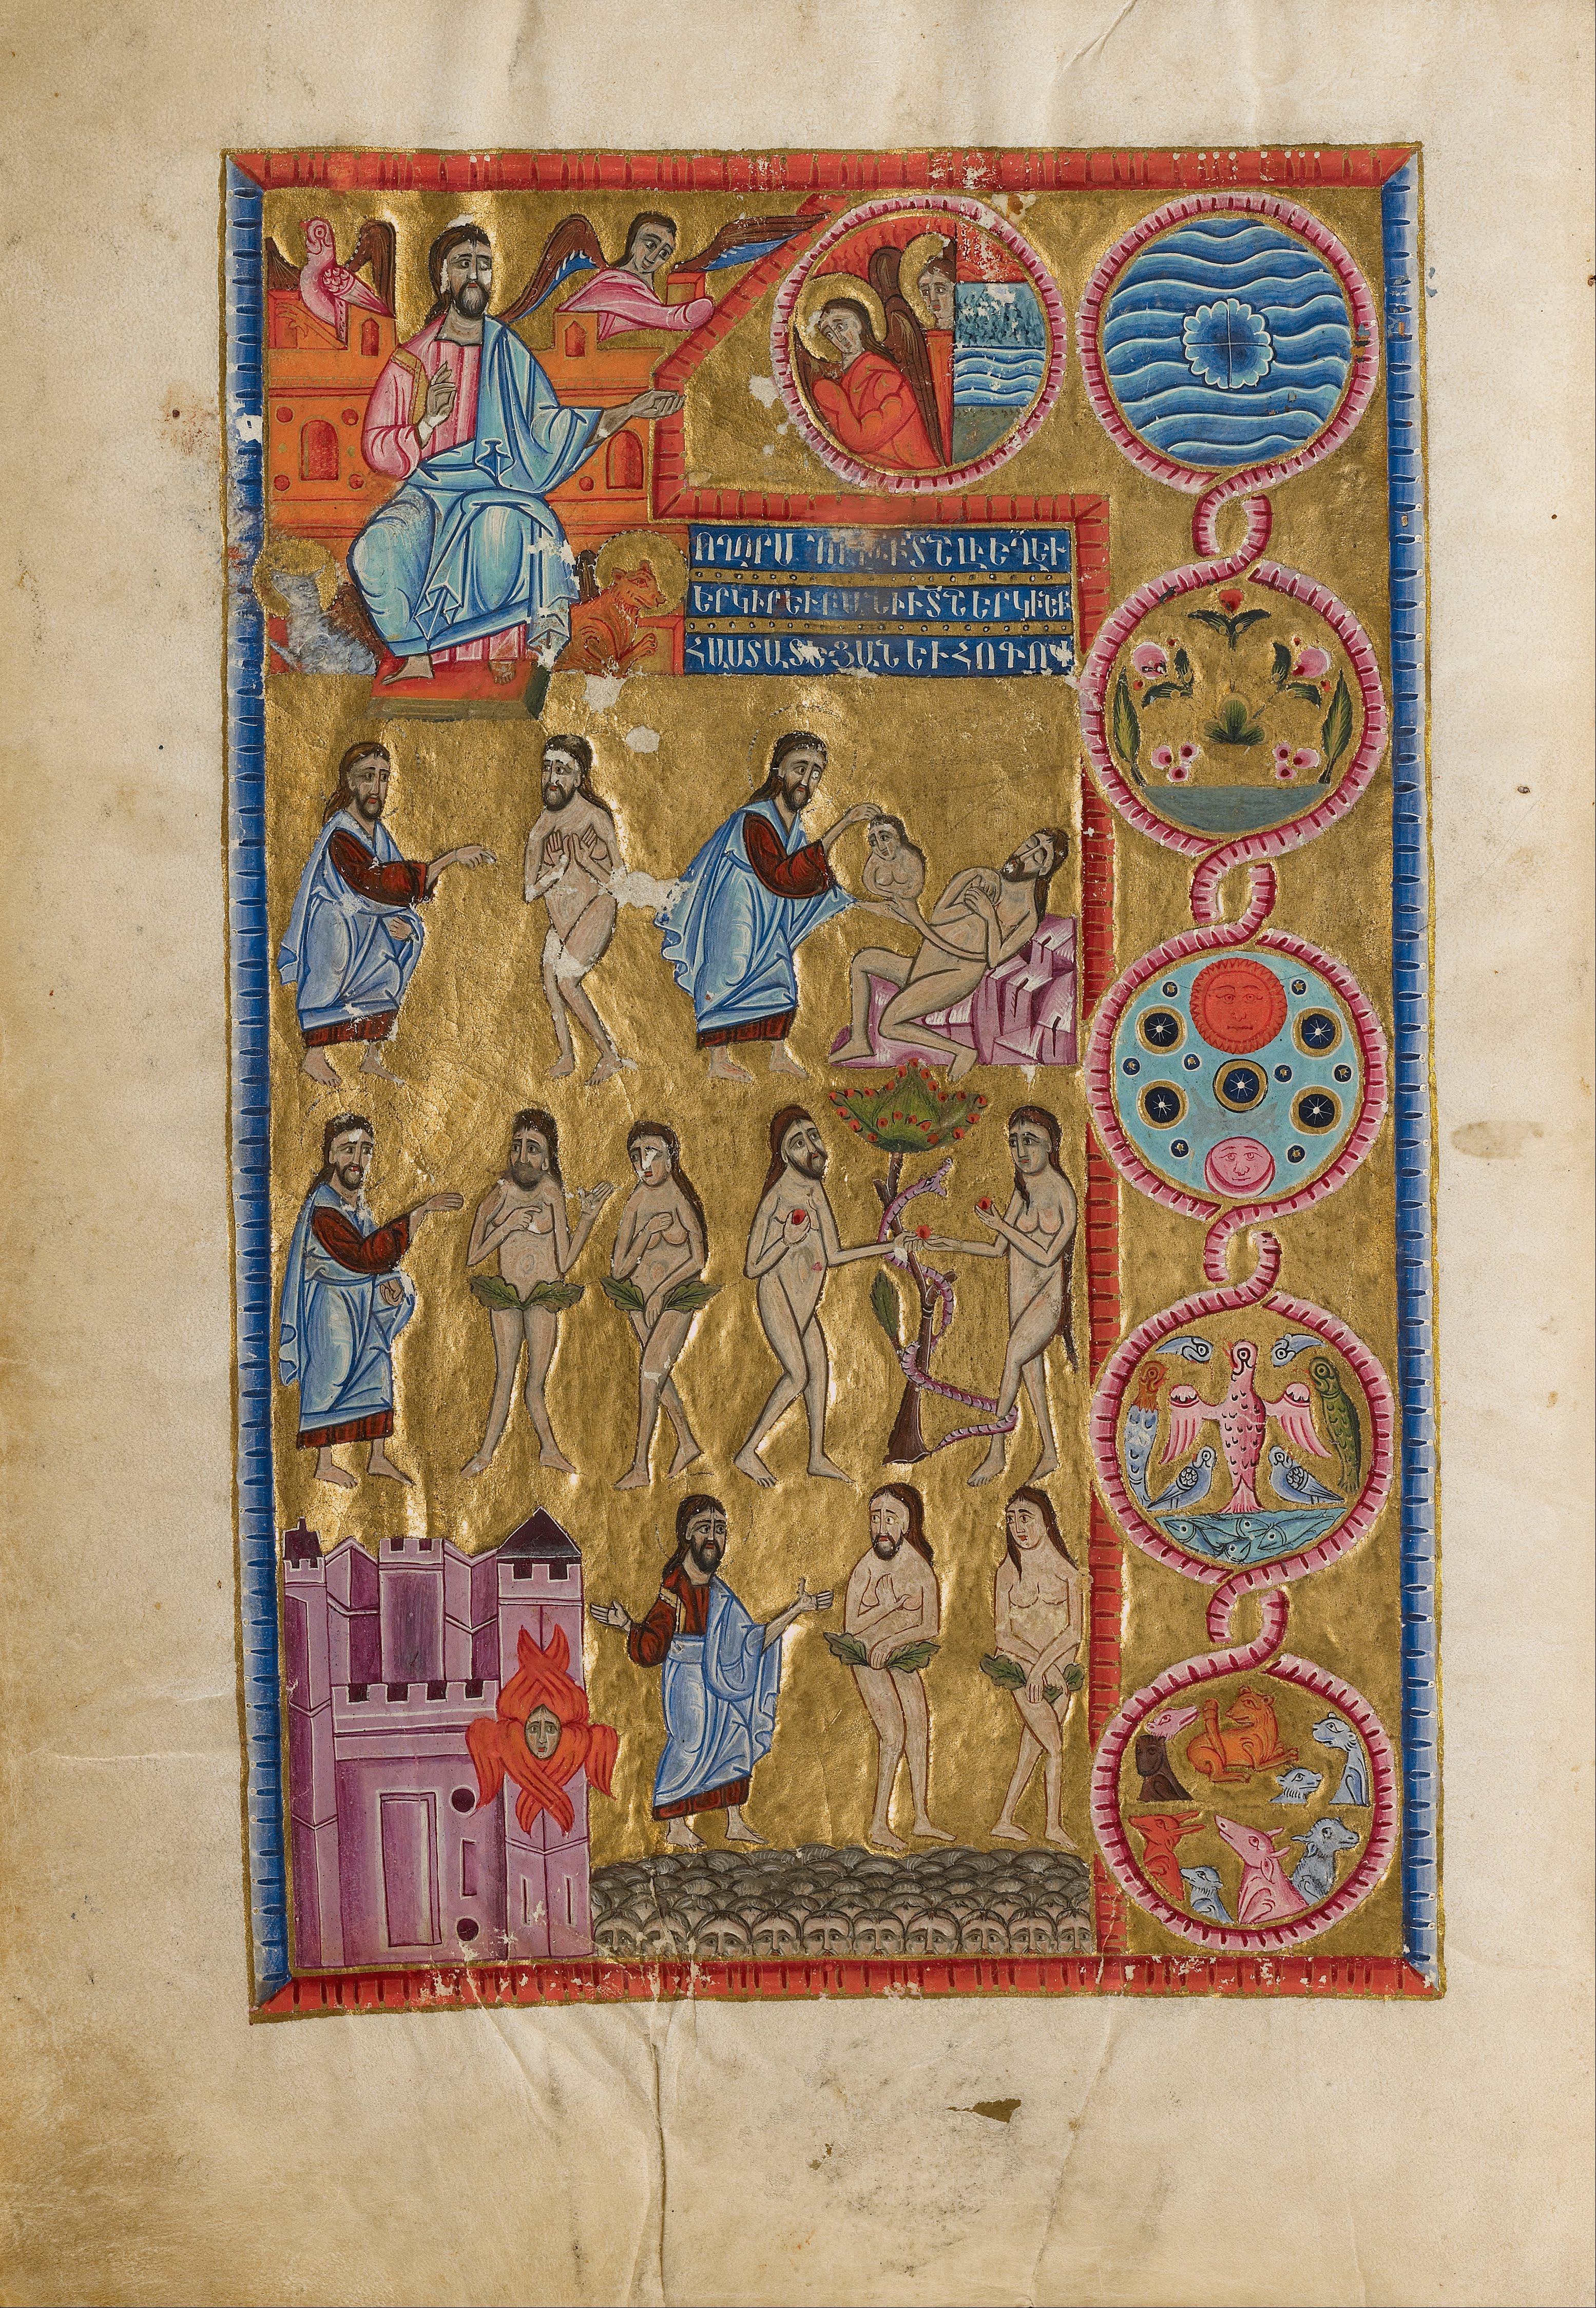 Scenes from the Bible, including the creation of Adam and Eve, and the Garden of Eden, from an Armenian manuscript illuminated by Malnazar and Aghapir, Isfahan, dated to 1637-1638